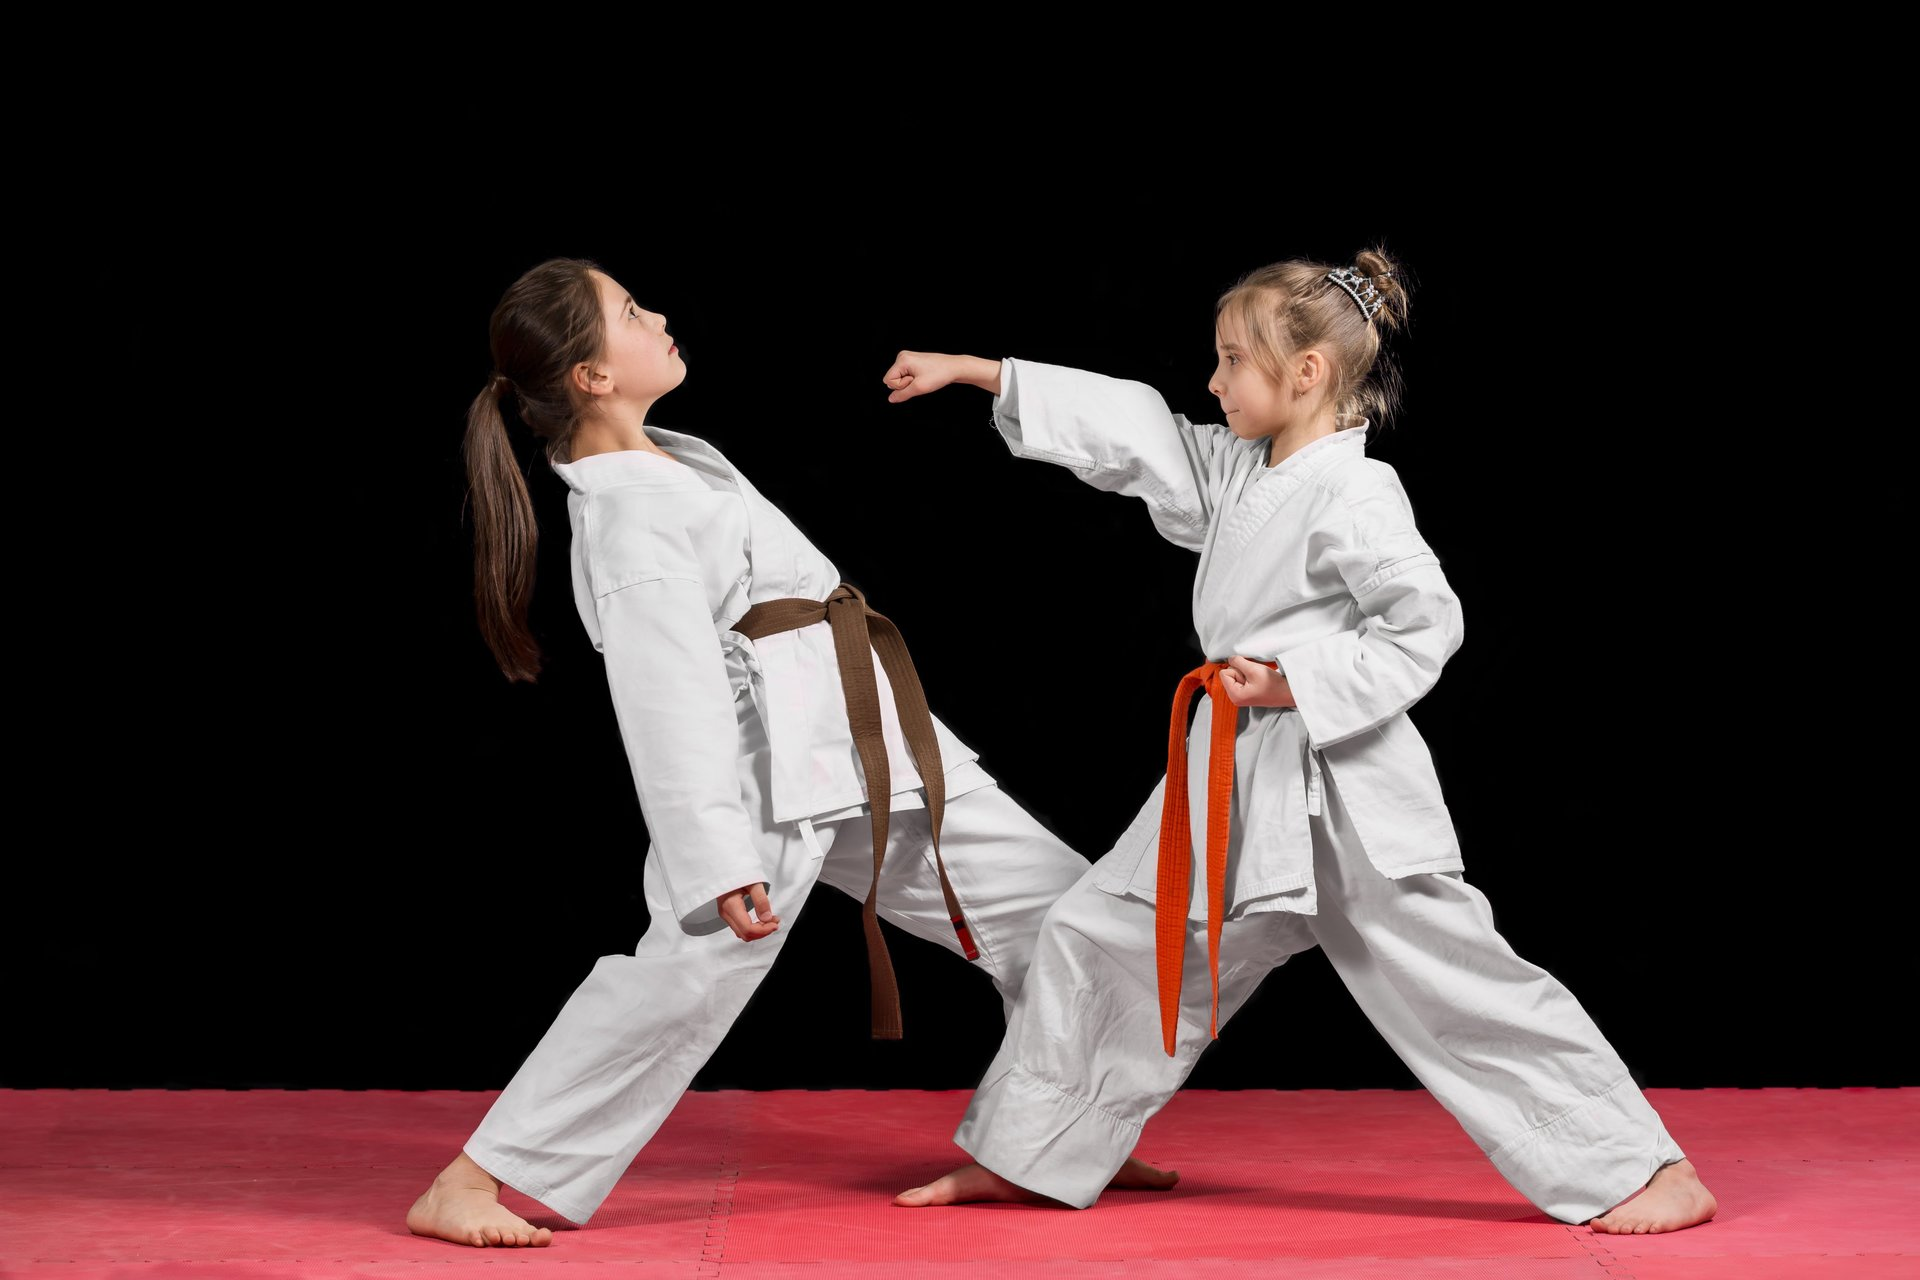 Performance Martial Arts | After-School Programs | Bowie, MD